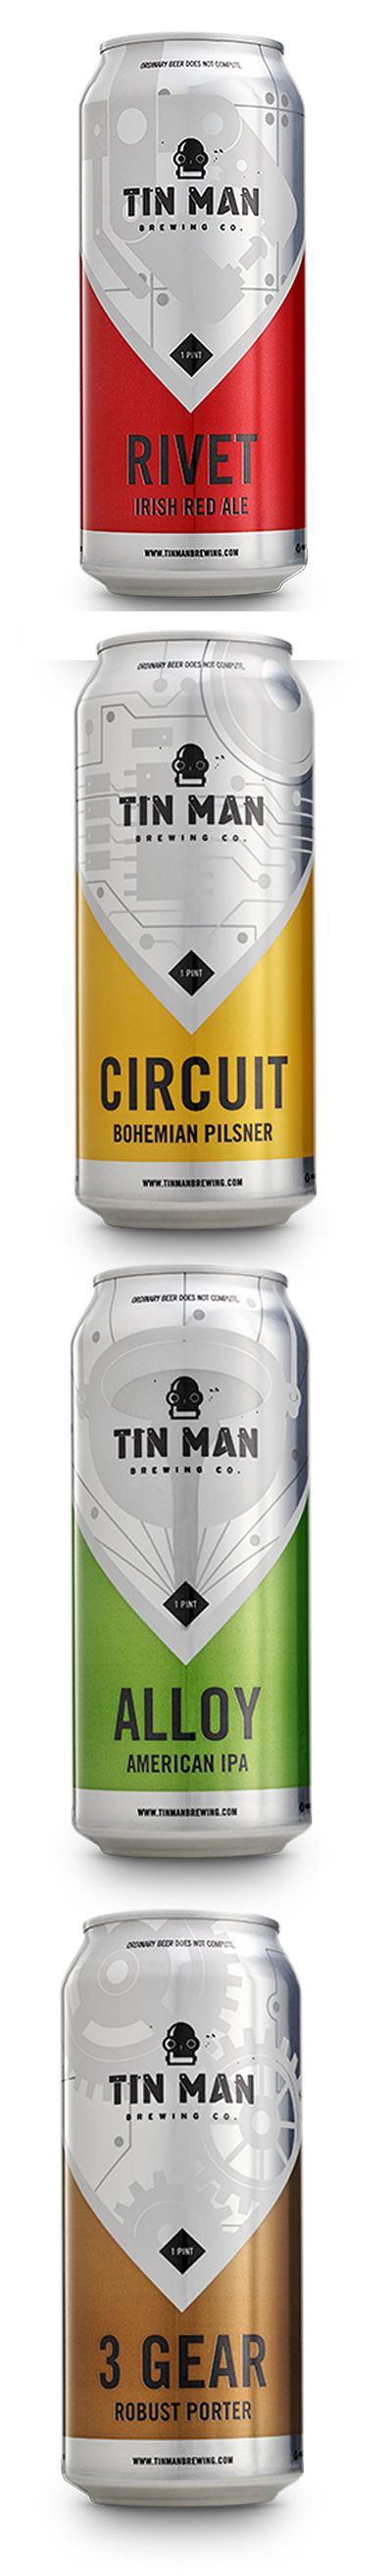 Tin Man Brewing Company's beautiful beer cans